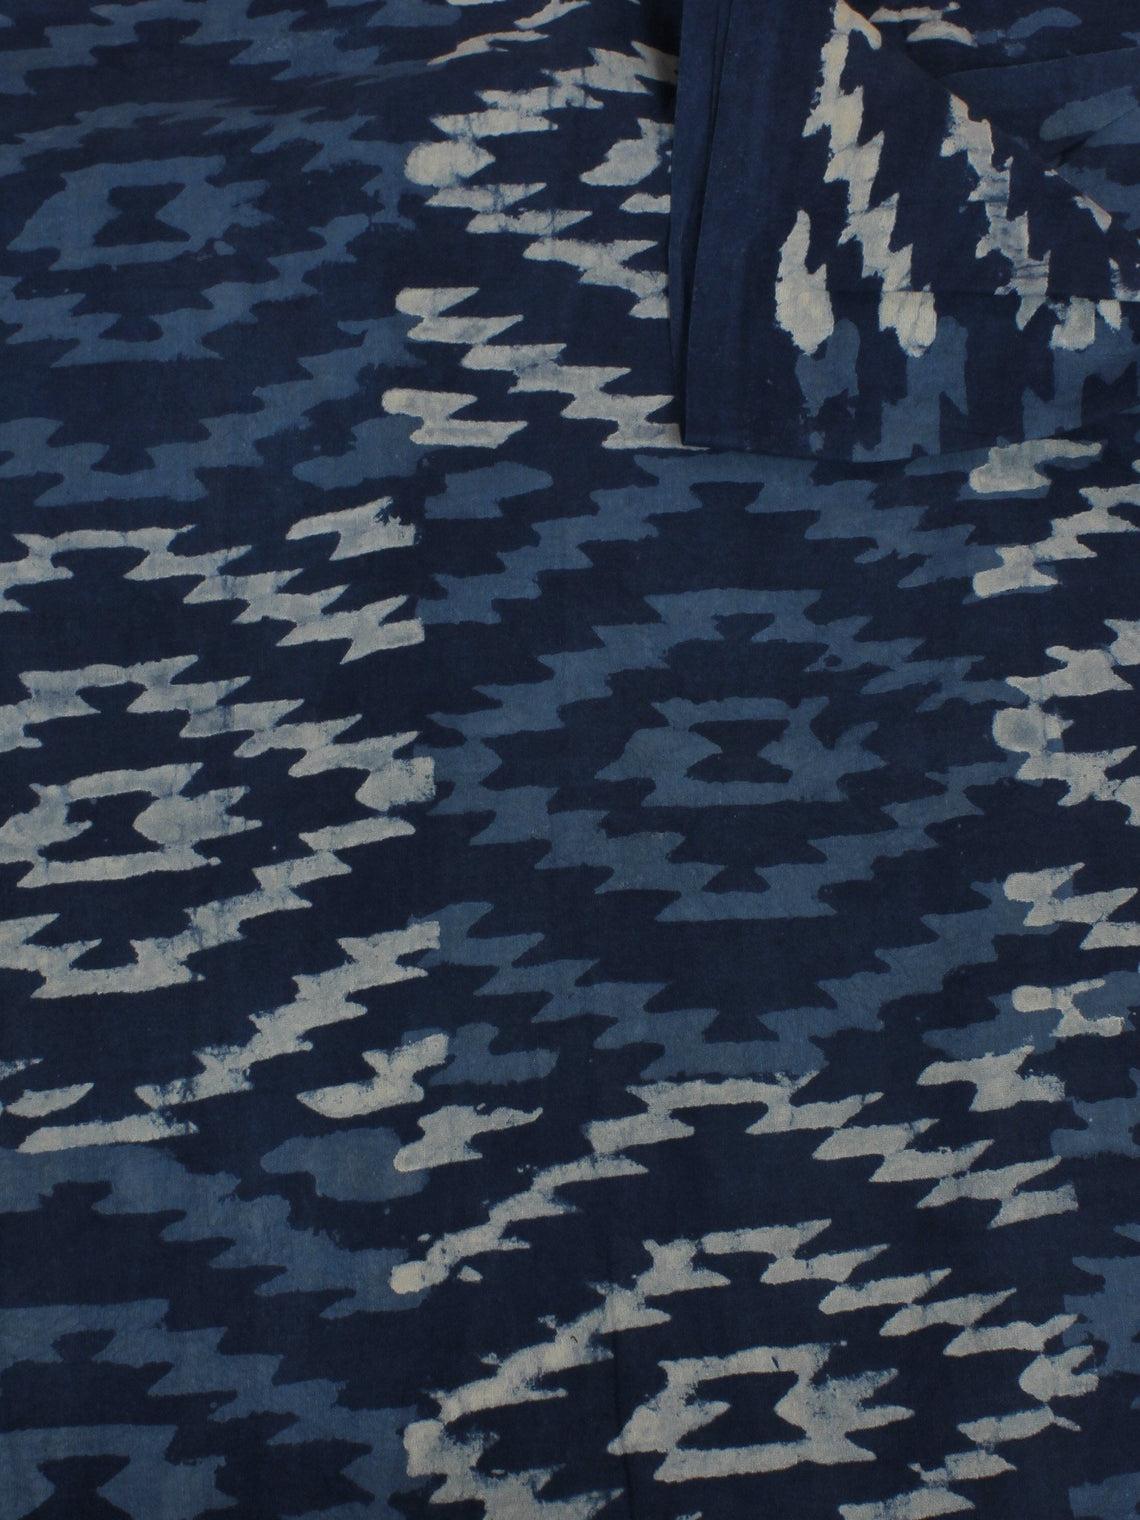 Indigo White Hand Block Printed Cotton Cambric Fabric Per Meter - F0916153